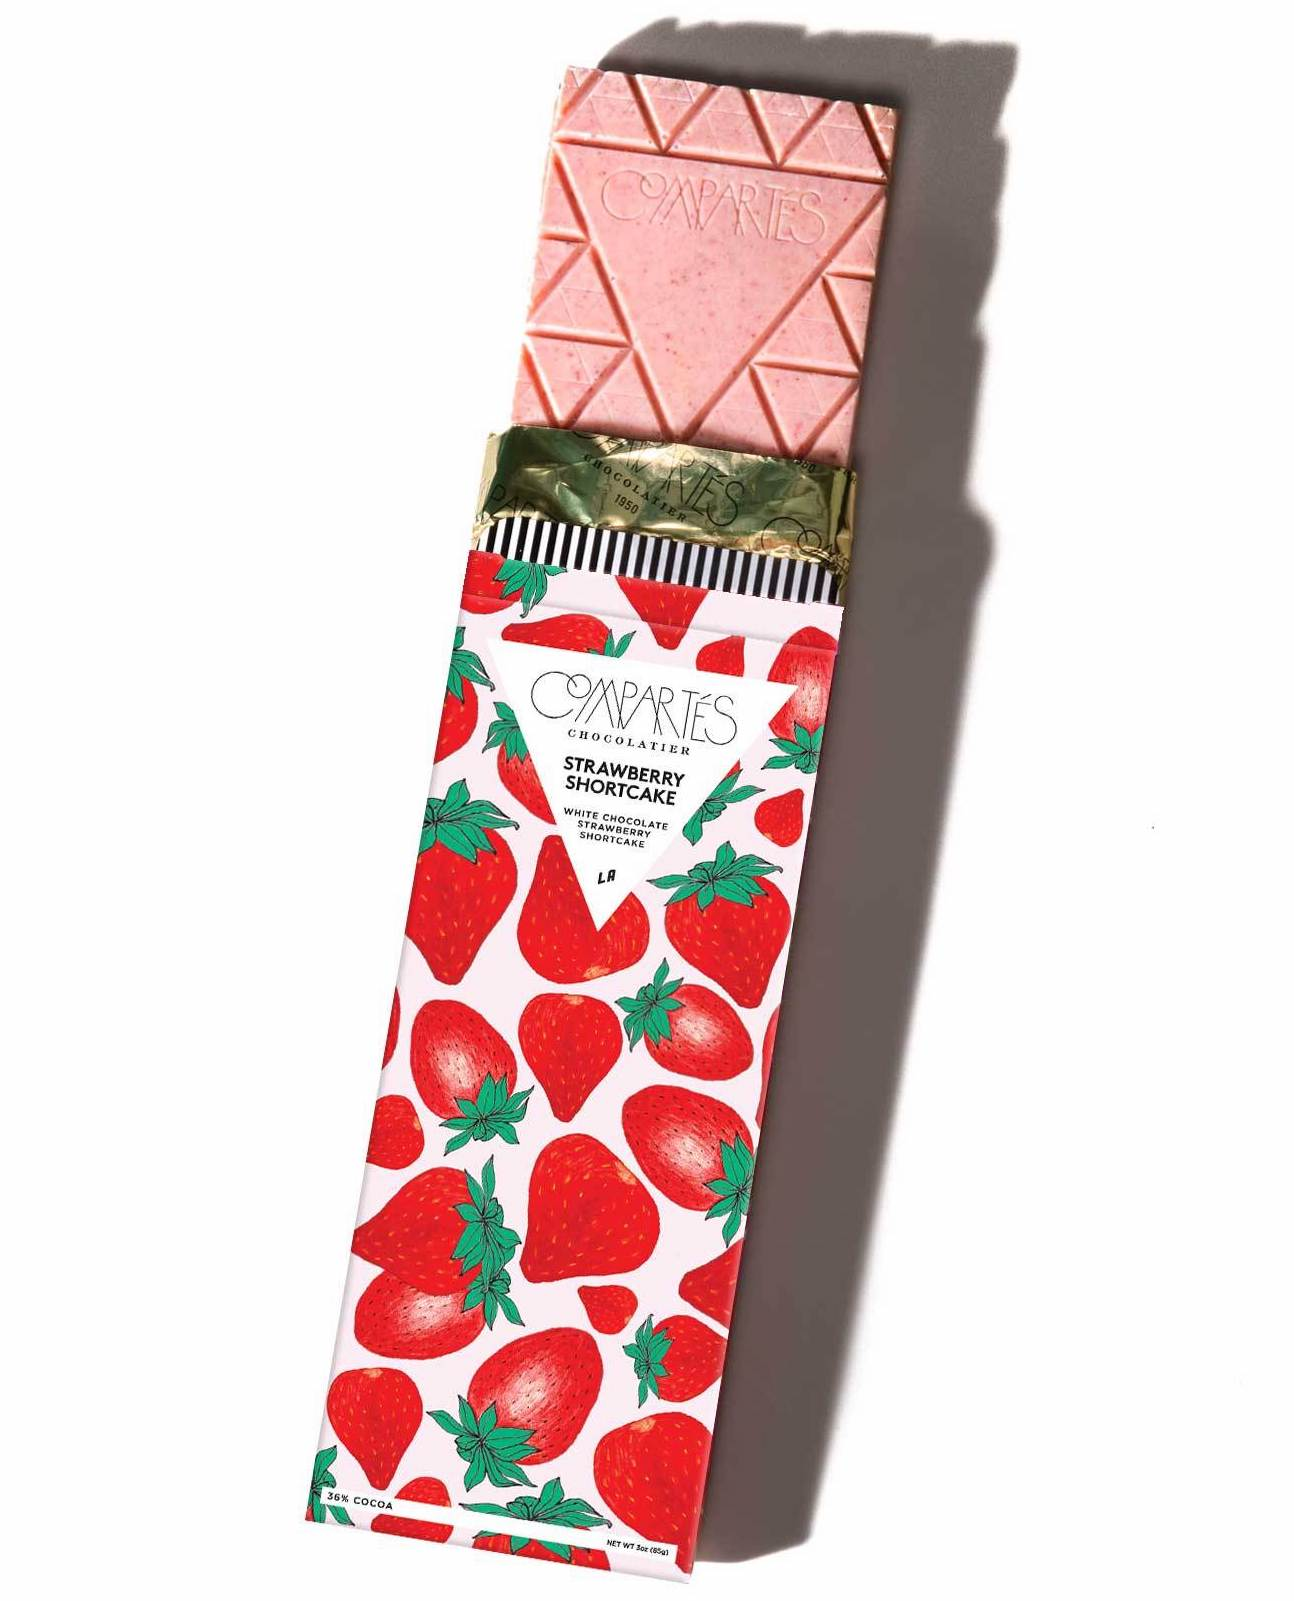 Strawberry Shortcake Chocolate Bar